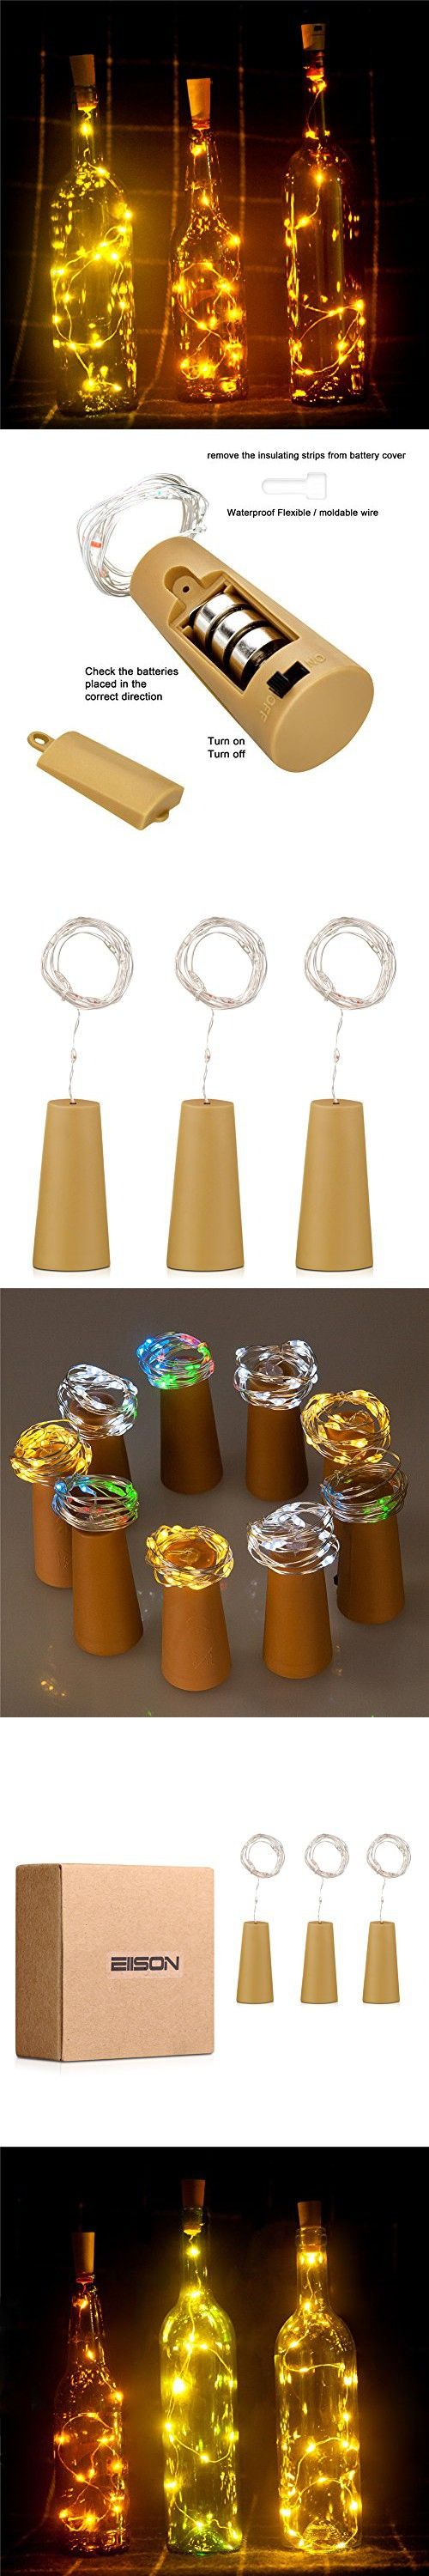 Bottle Light,3 Pack of Wine Bottle Cork Lights, Copper Led Light Strips, Wire Starry Rope Lamp Kit DIY with battery for Christmas Decor Wedding Party Decoration, Holiday Décor, EIISON (Warm White)